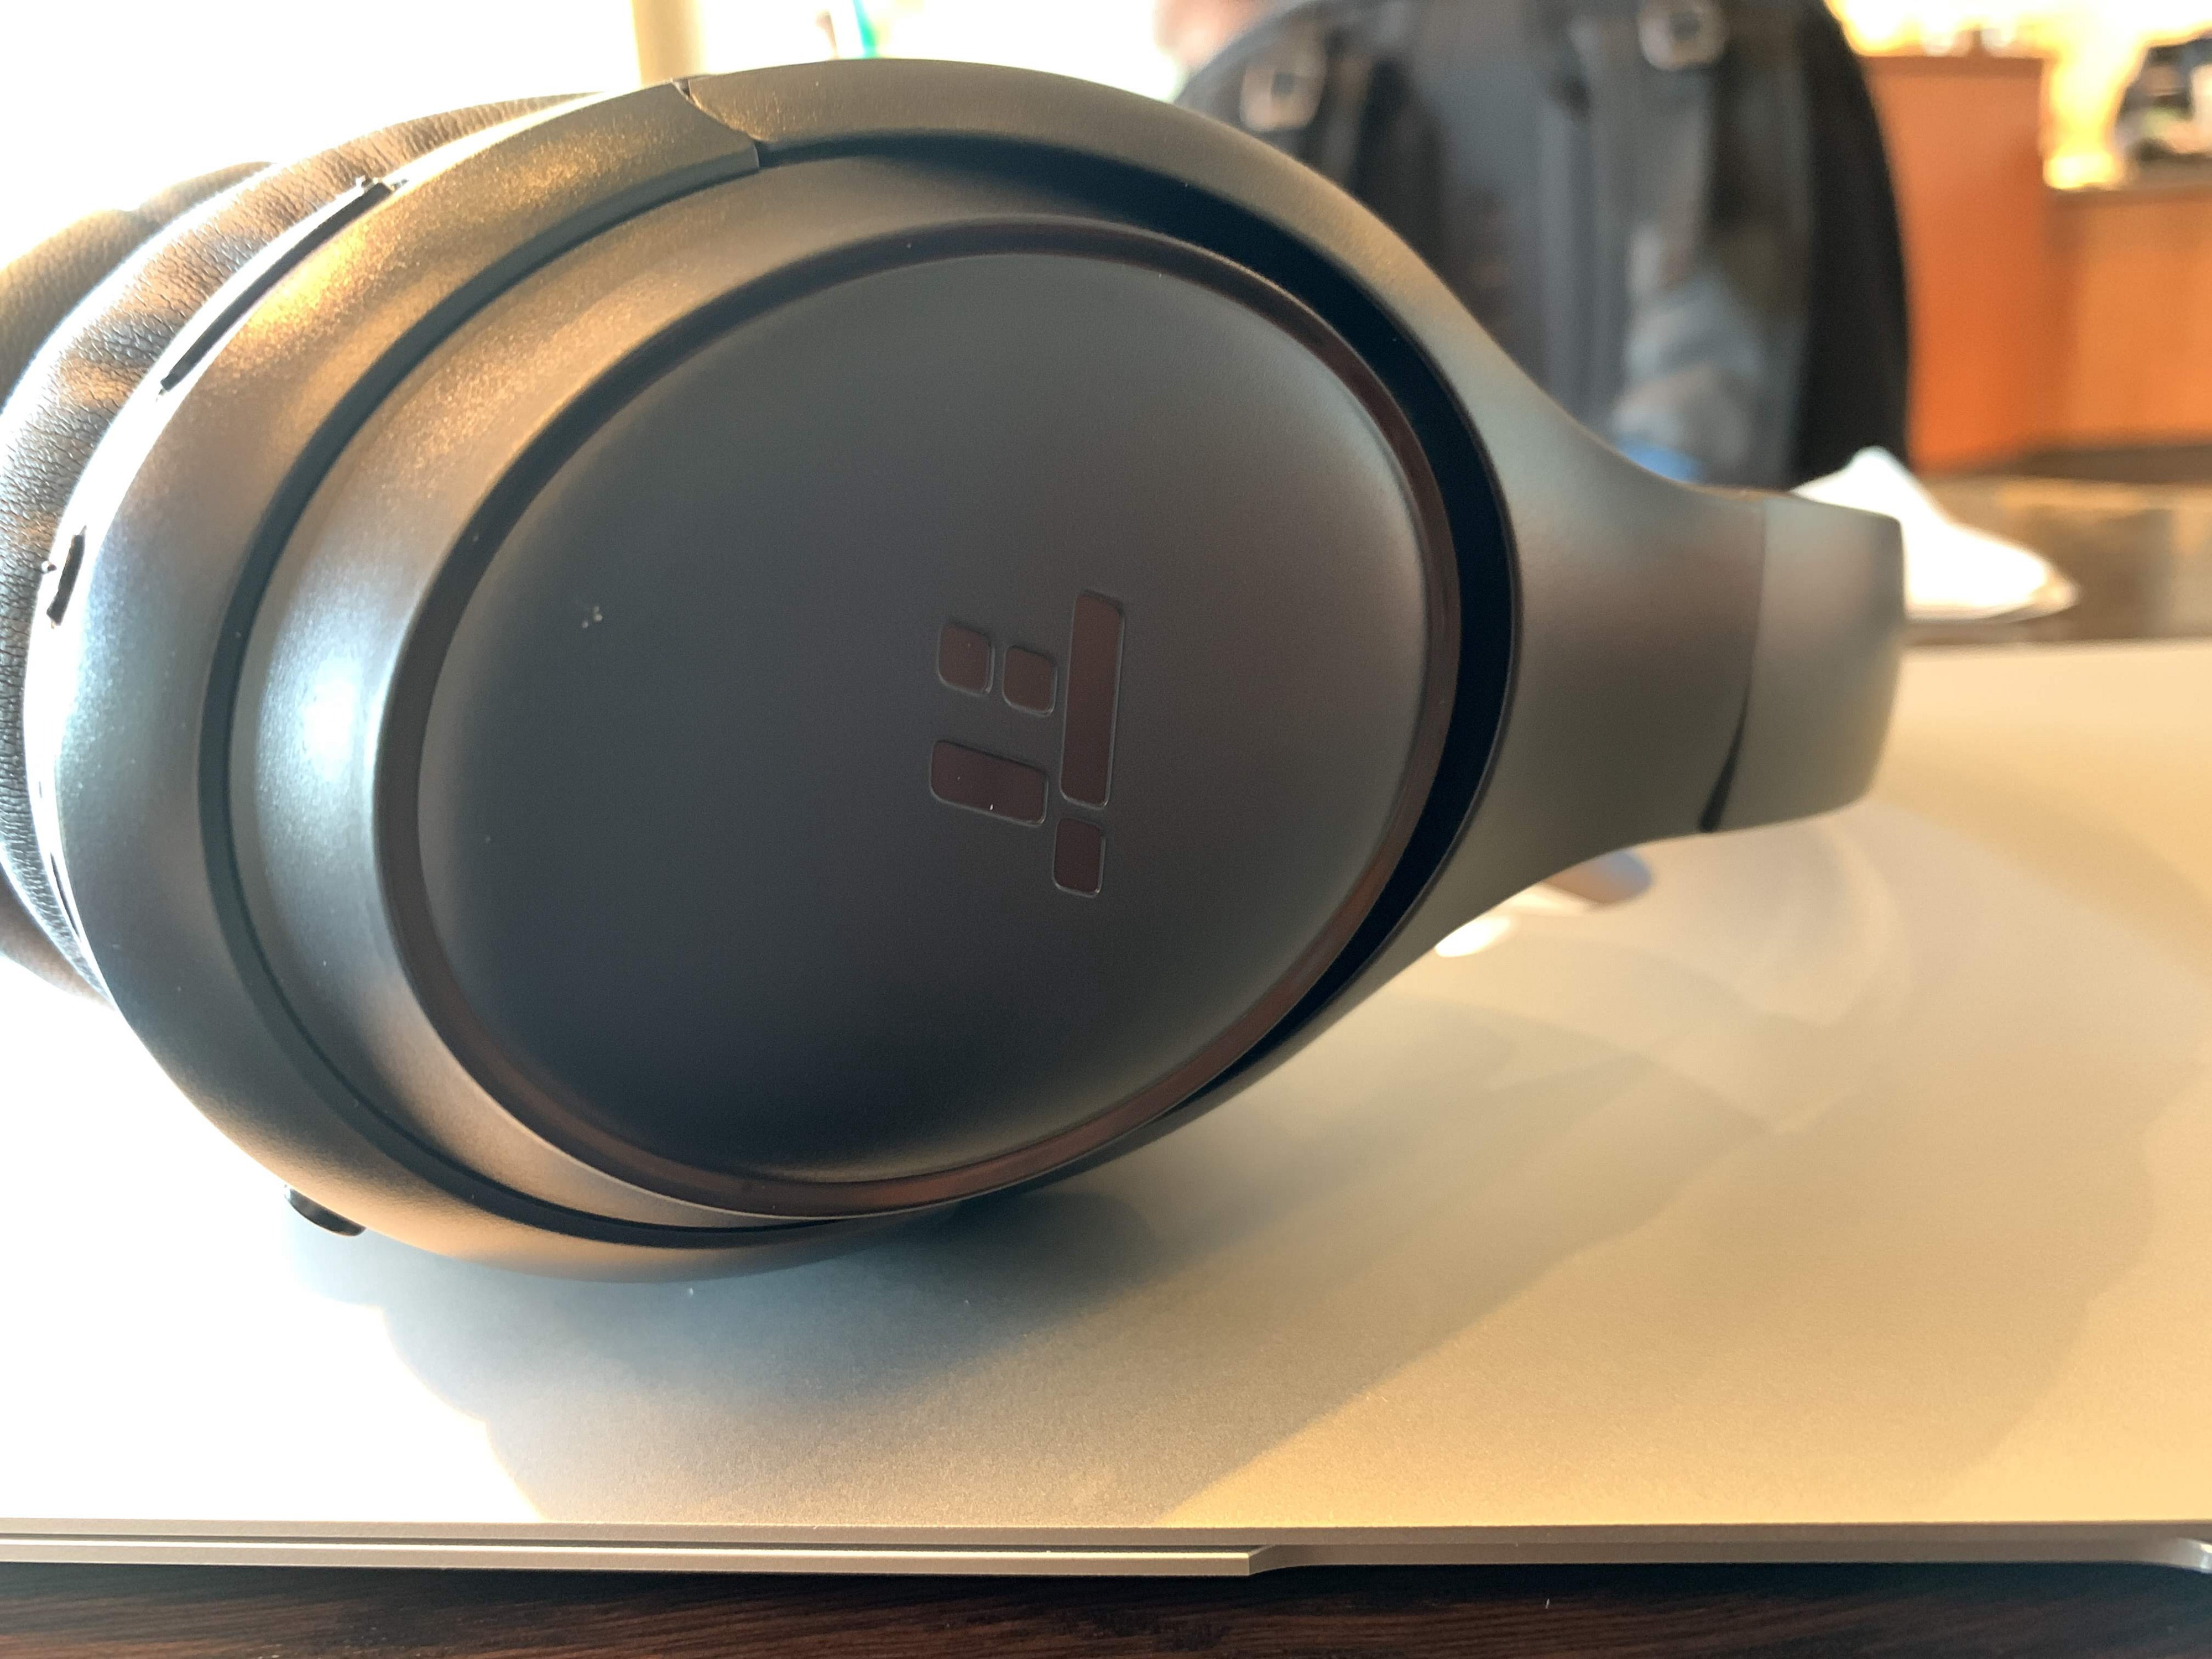 TaoTronics BH060 Wireless Noise Cancelling Headphones: The